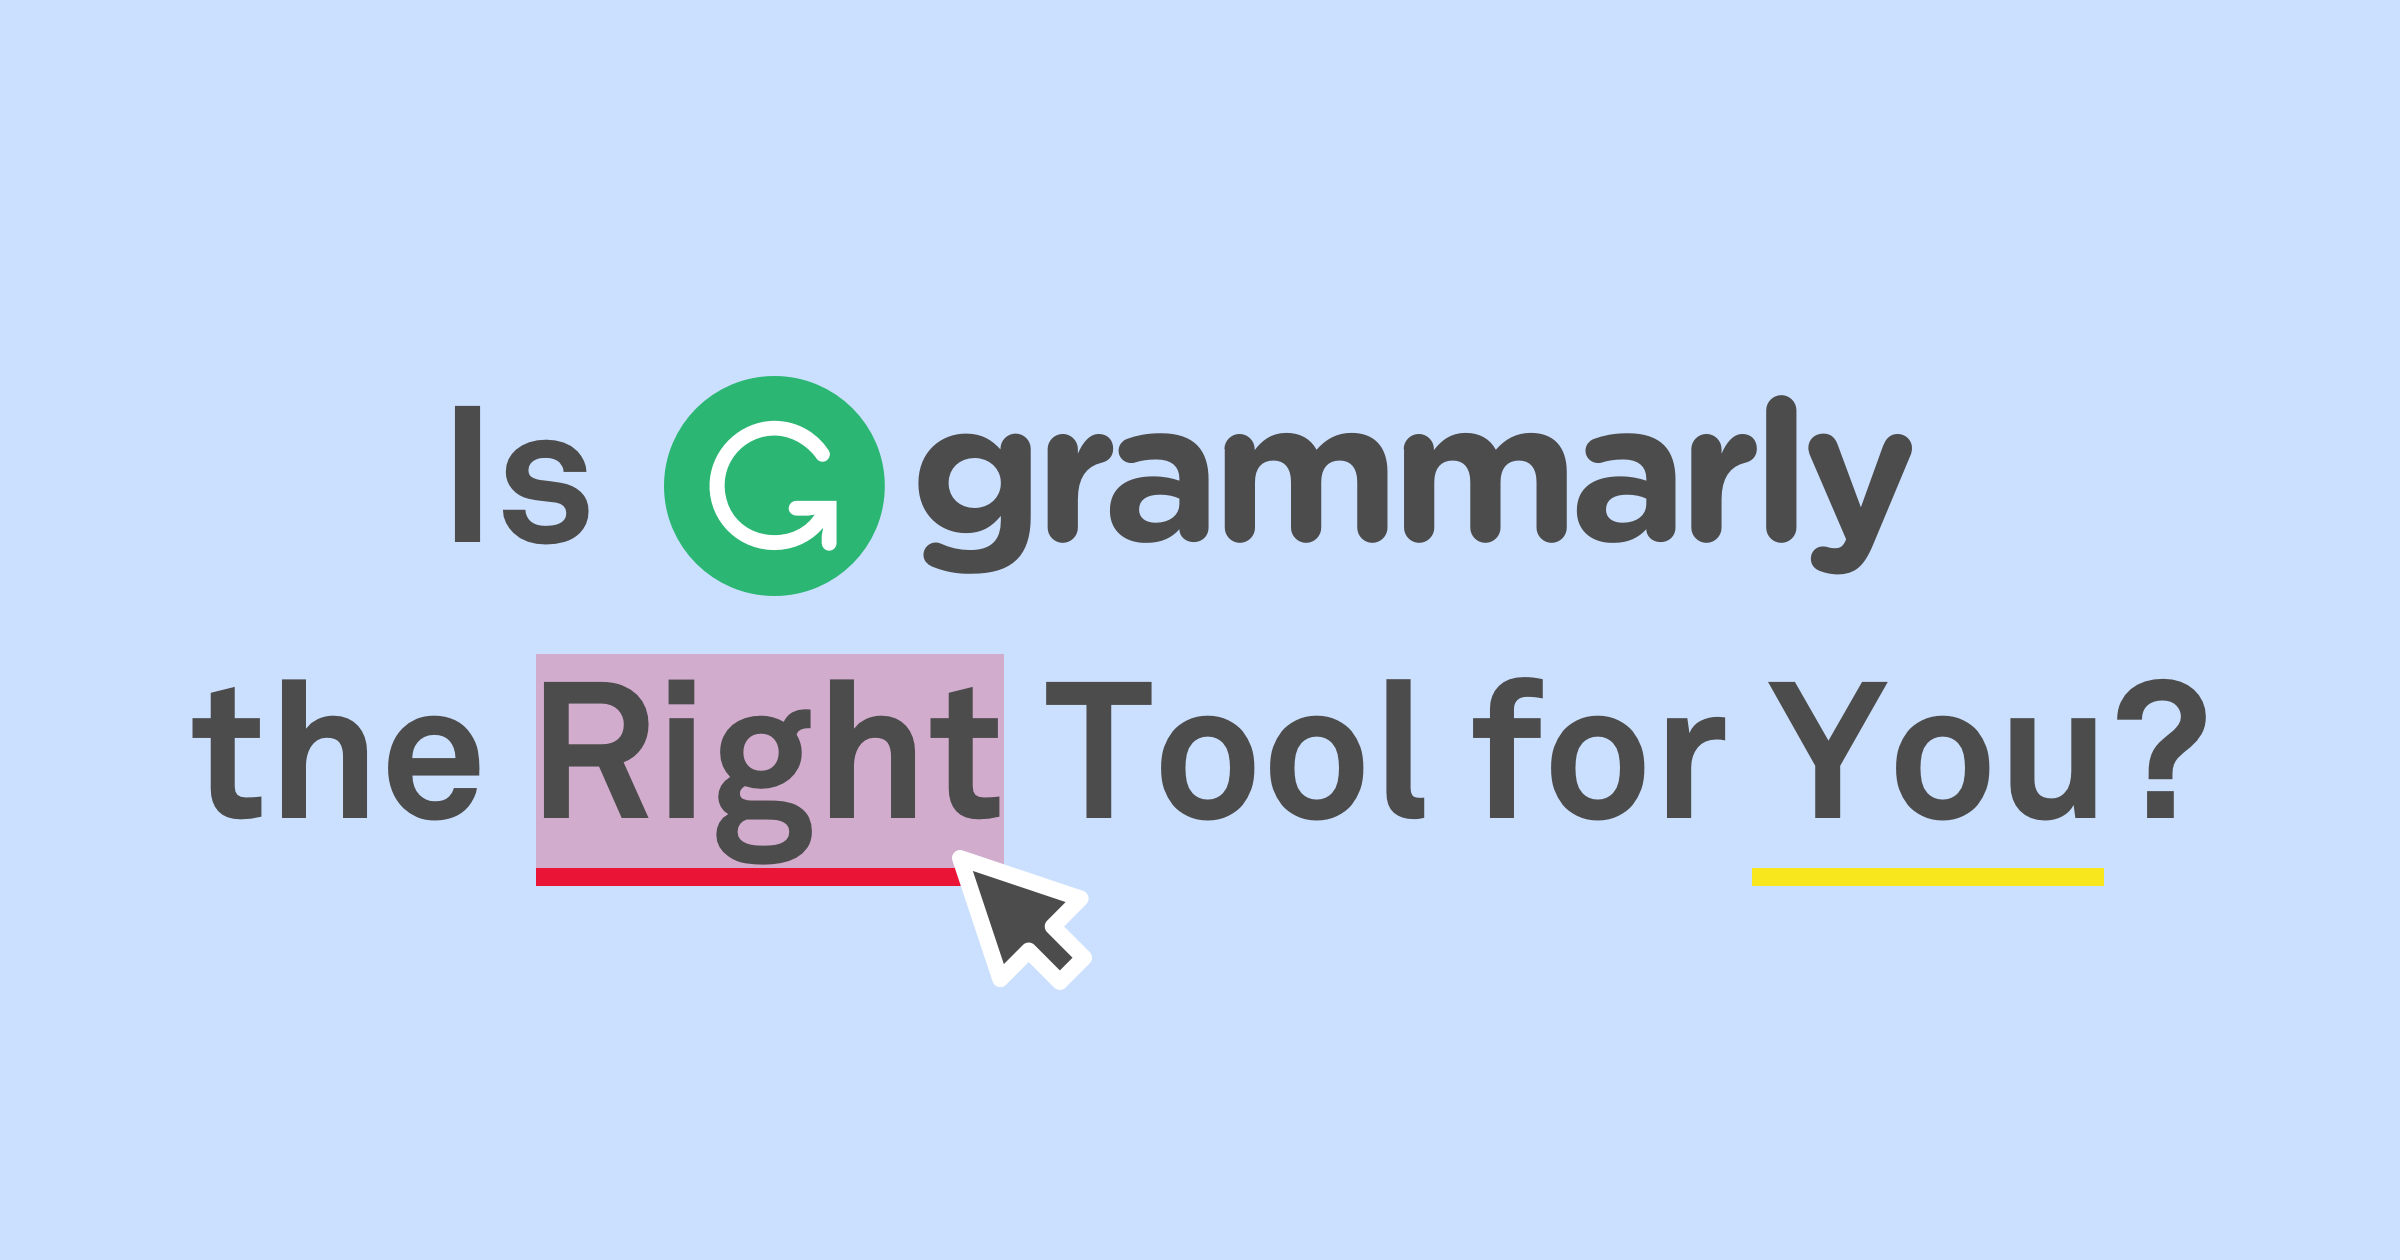 Retail Grammarly